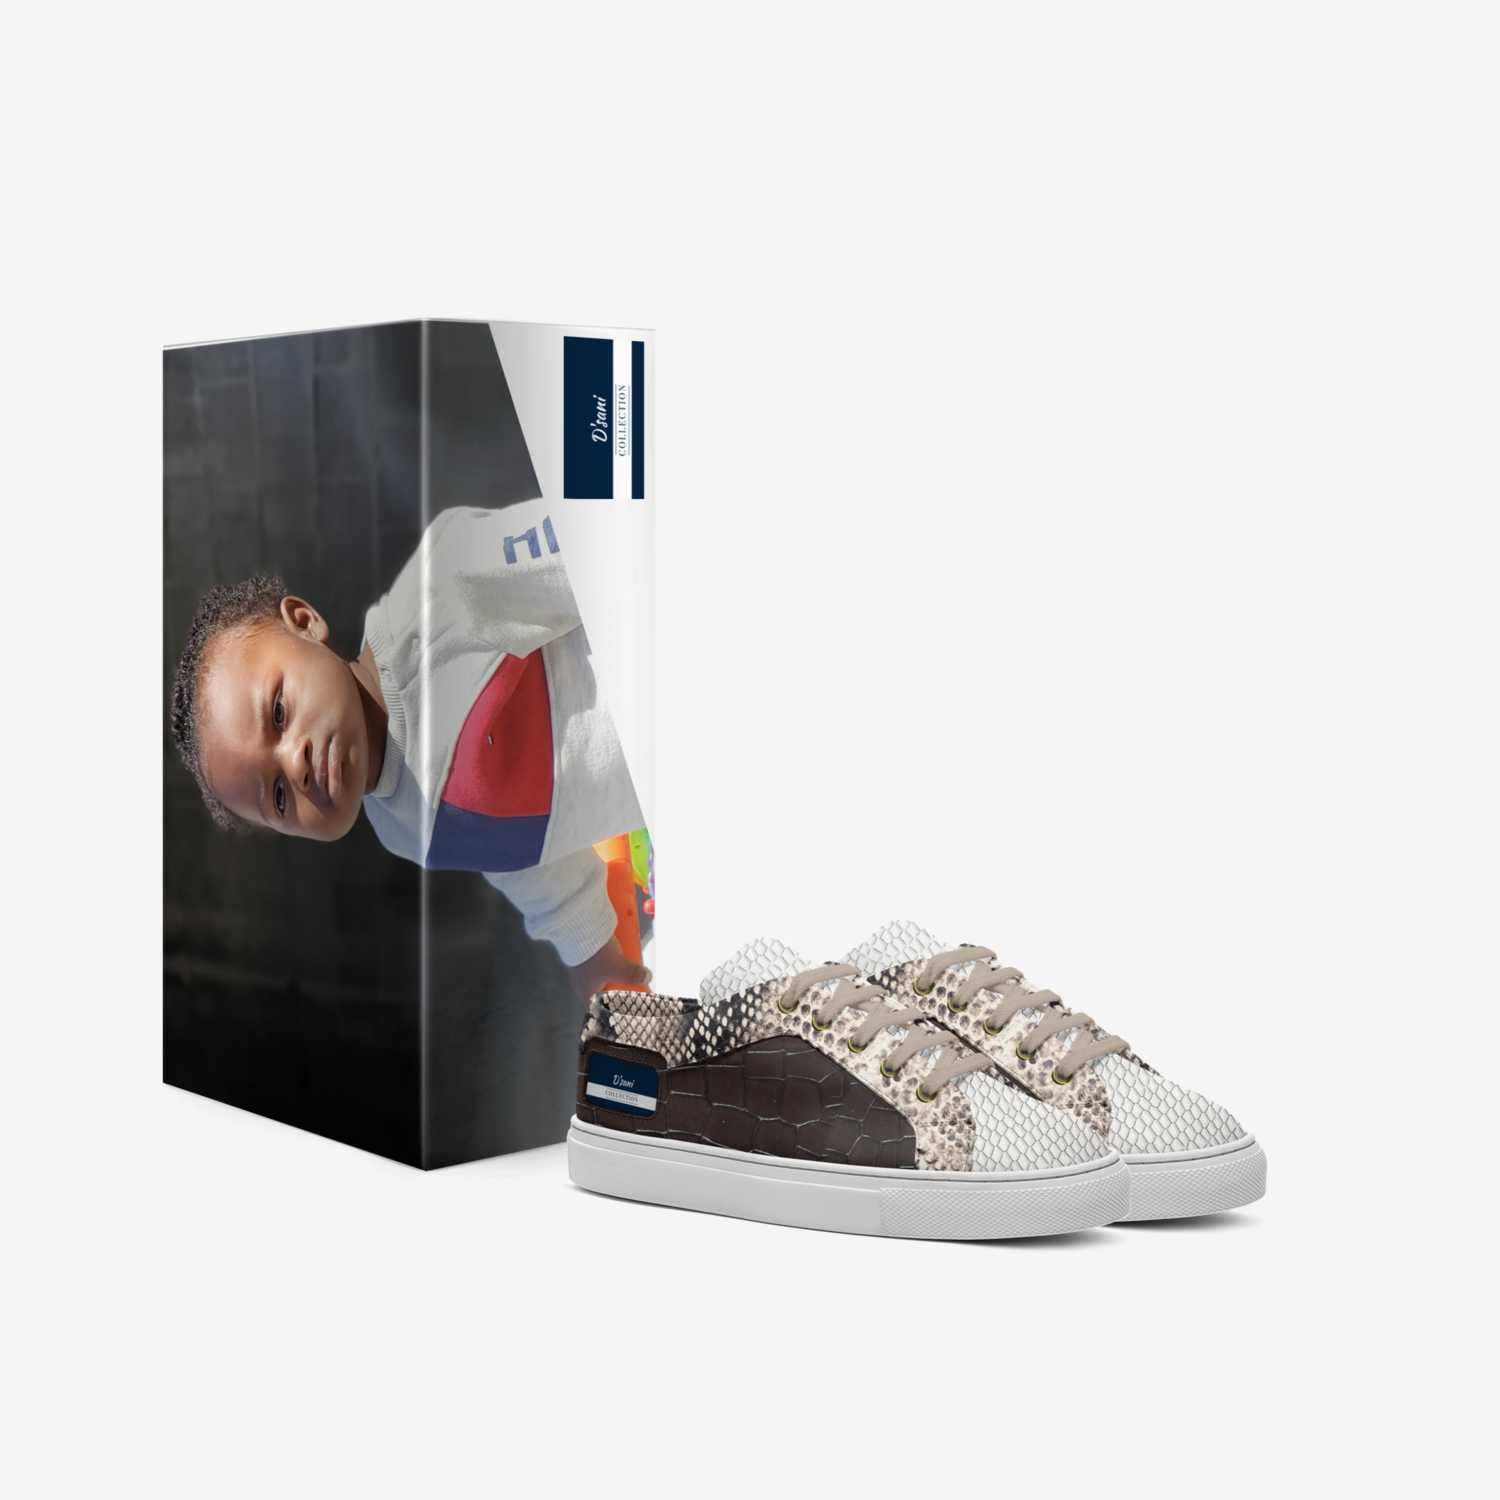 Dasani  custom made in Italy shoes by Ira J Roberson   Box view